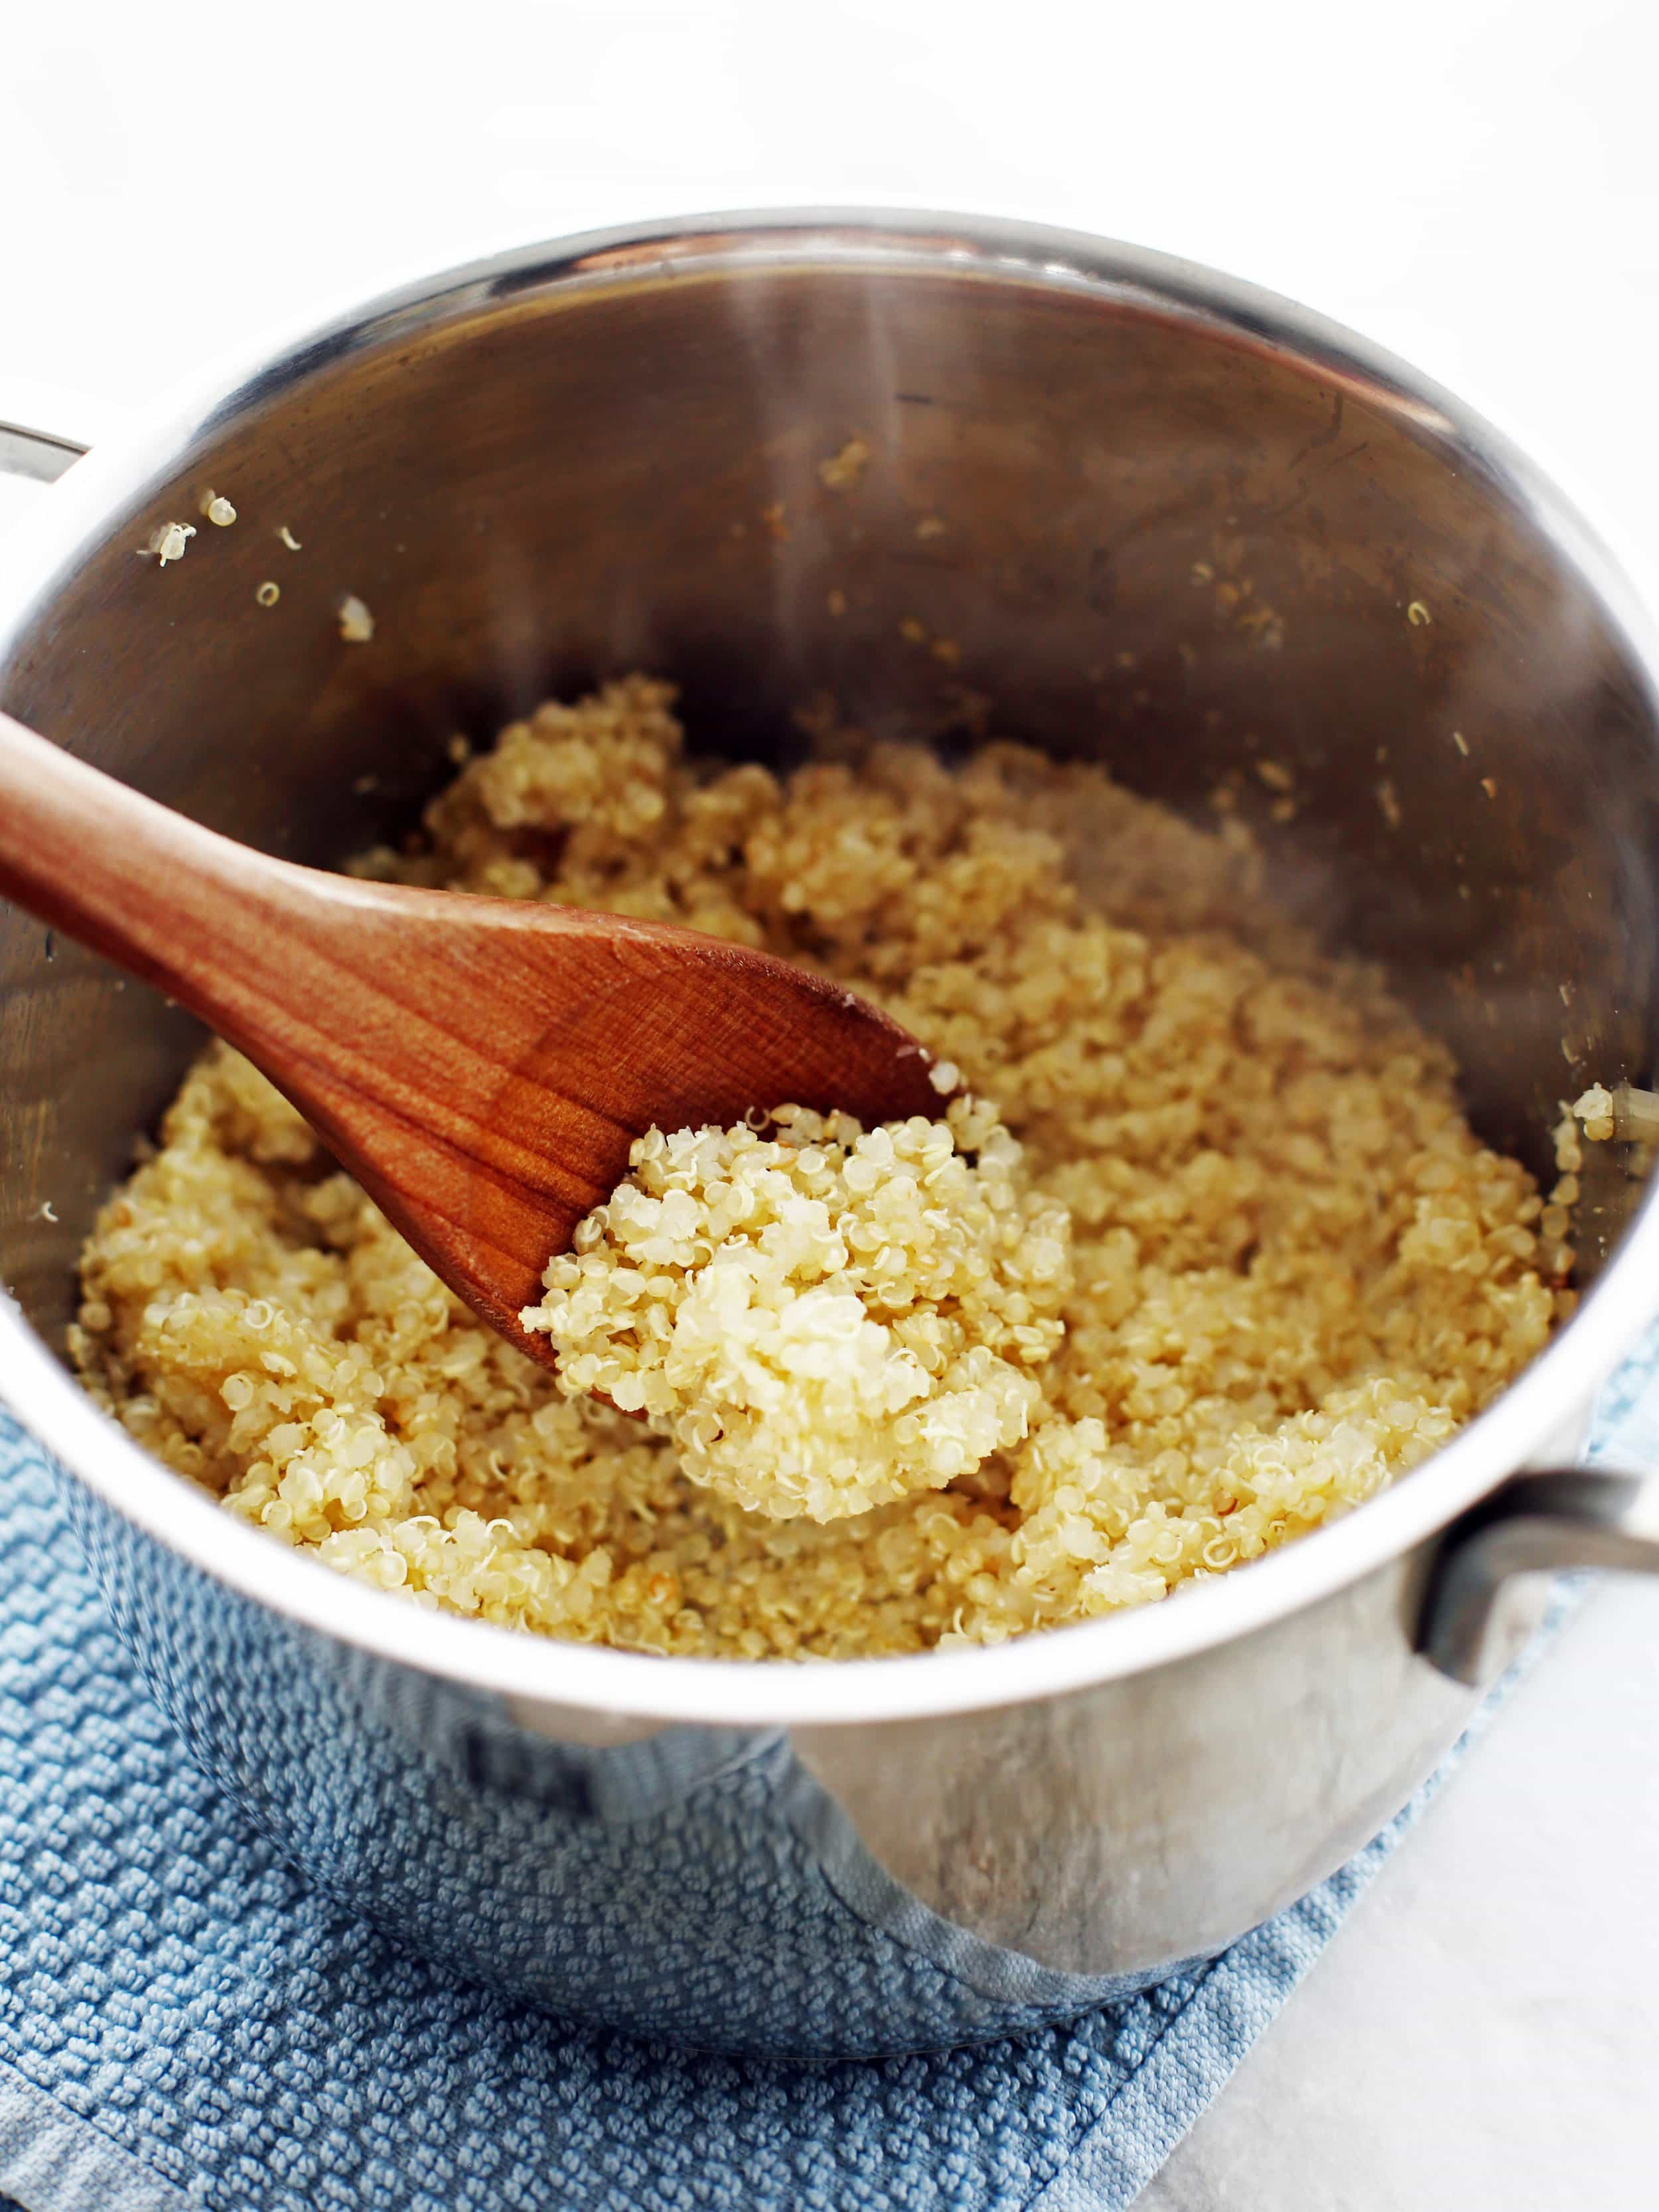 Cooked white quinoa in a small pot with a wooden spoon.